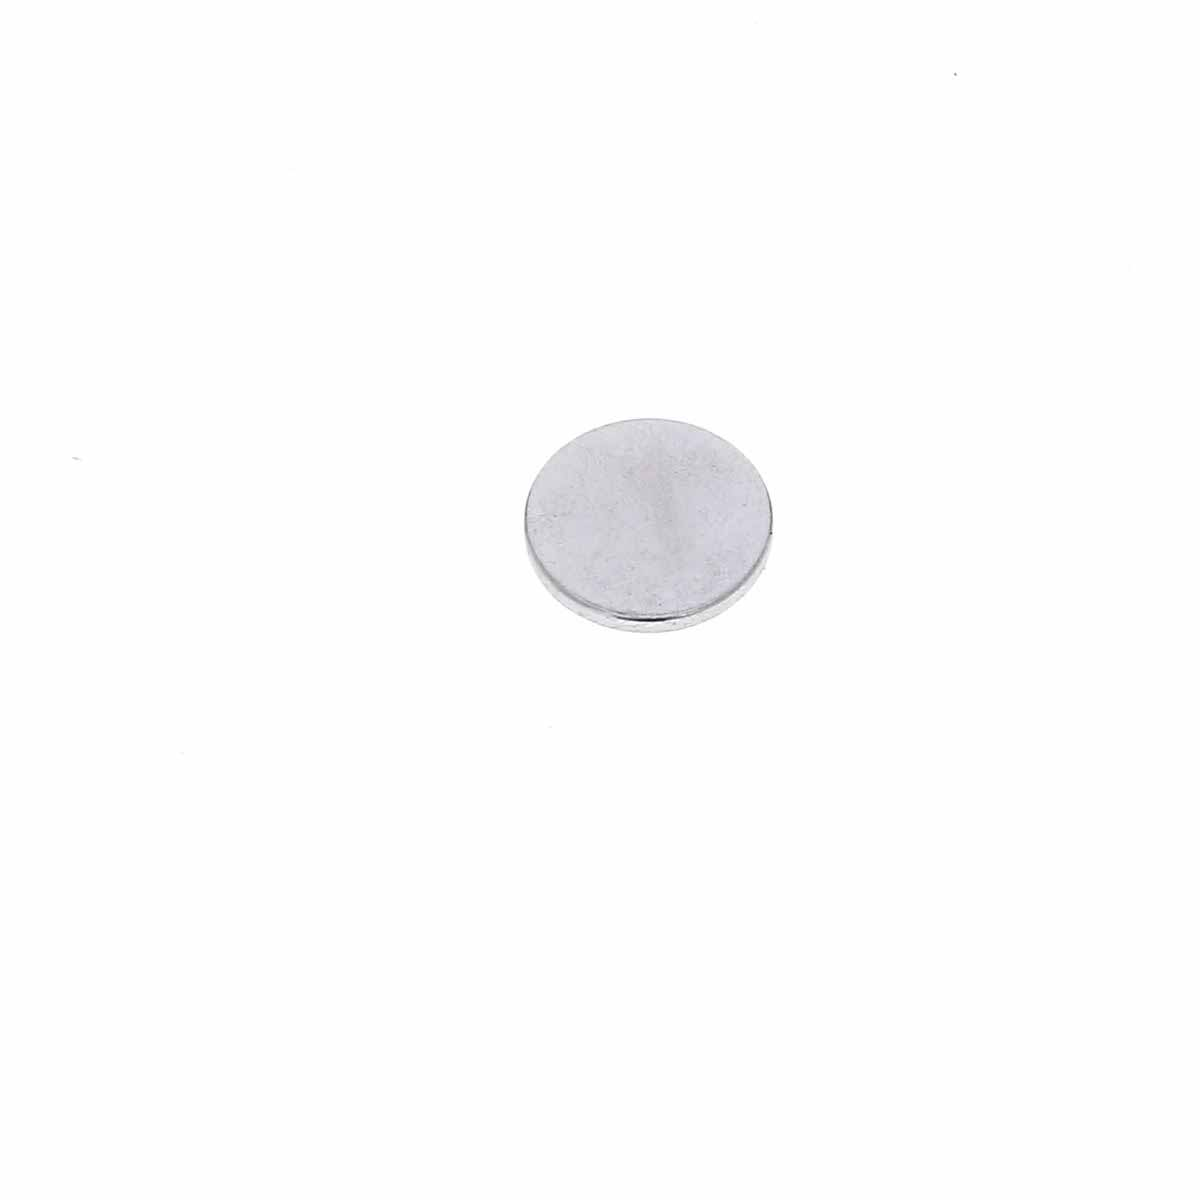 Aimant rond - 9,5 x 1,5 mm